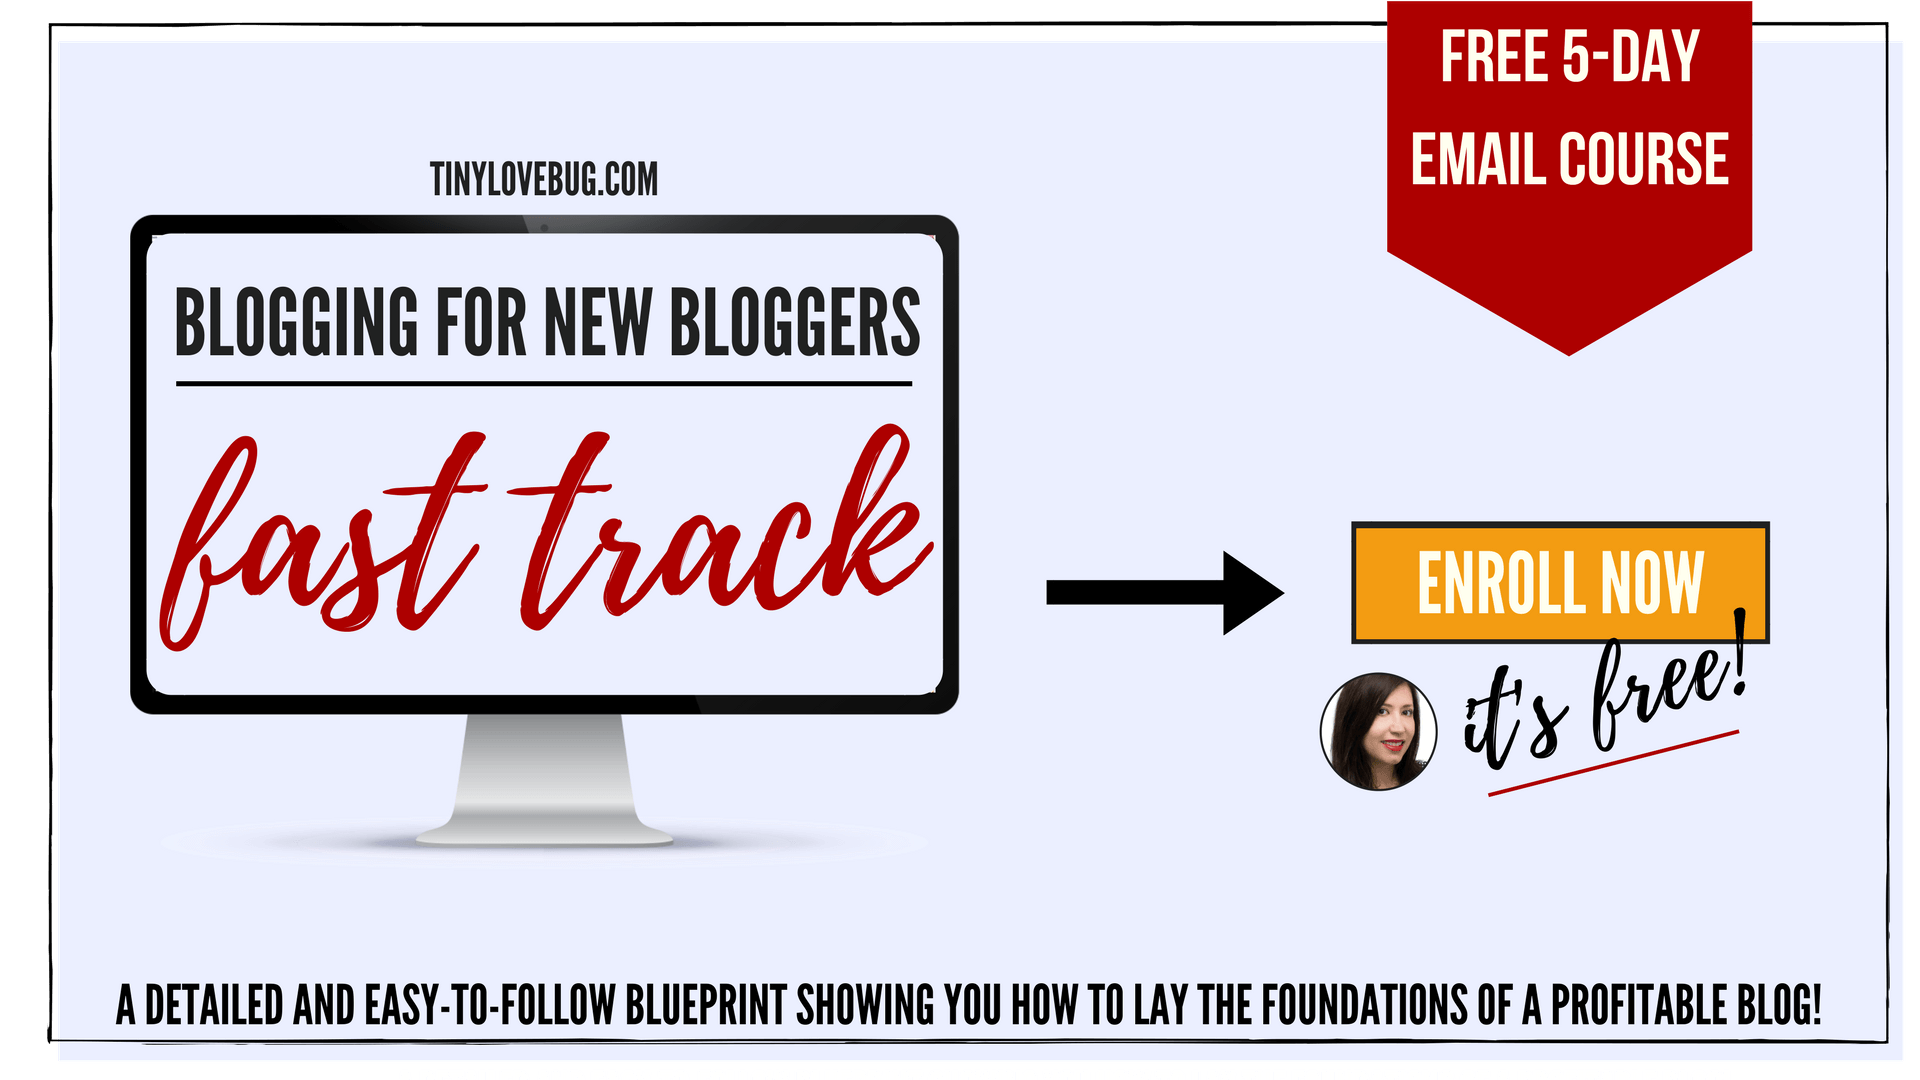 Blogging for new blogger fast track - free course - enroll now